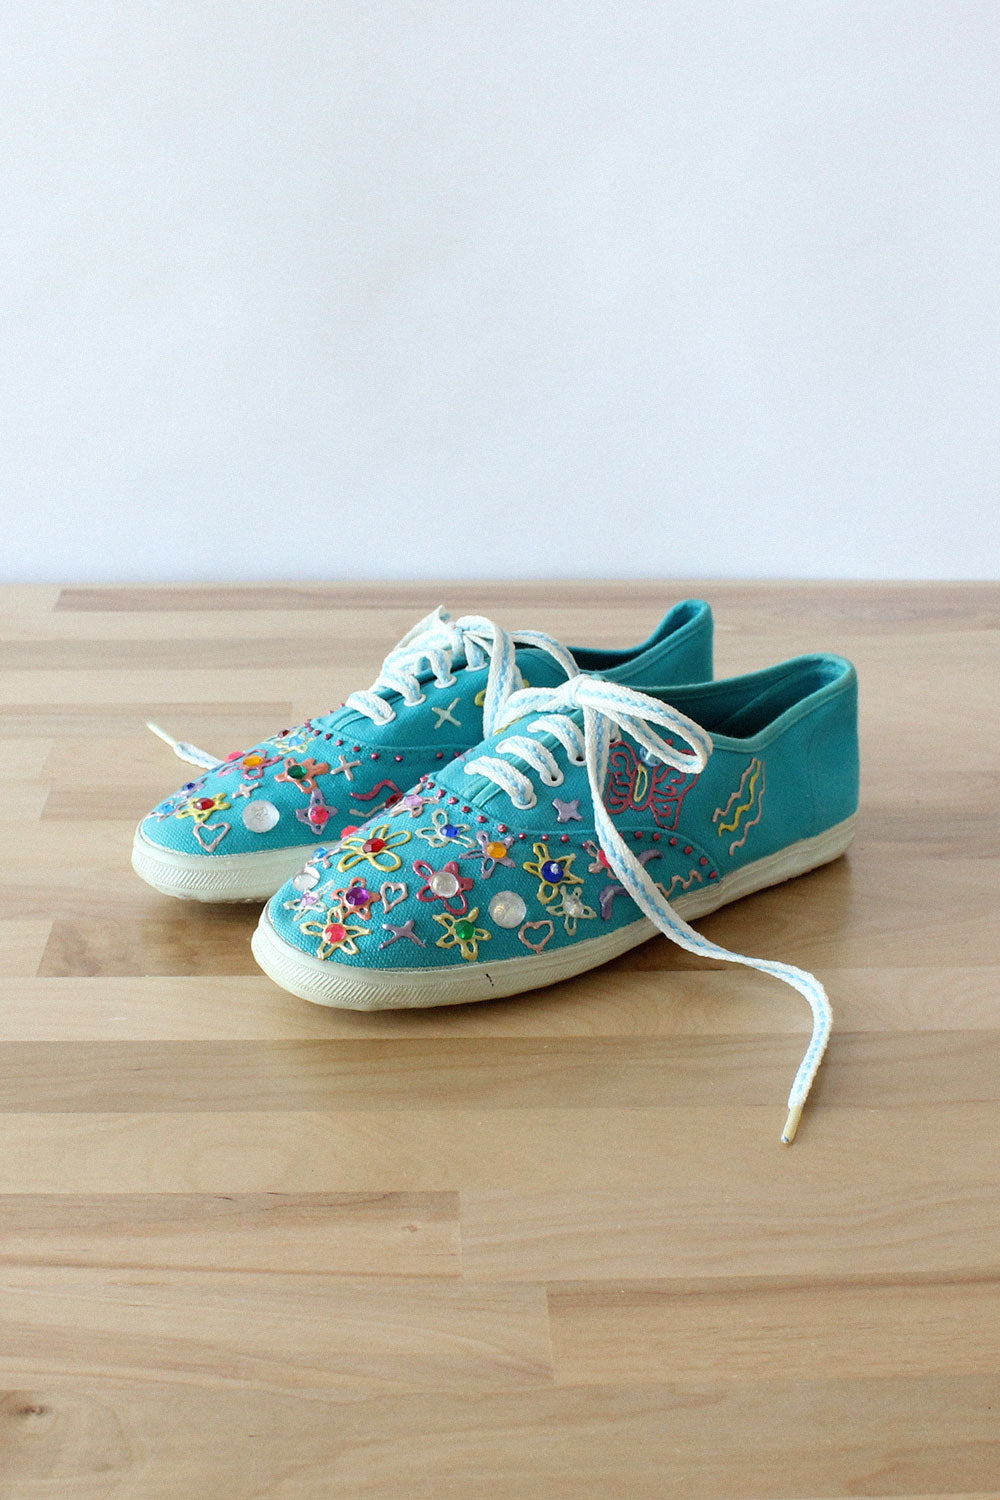 Jenny Embellished Sneakers 7